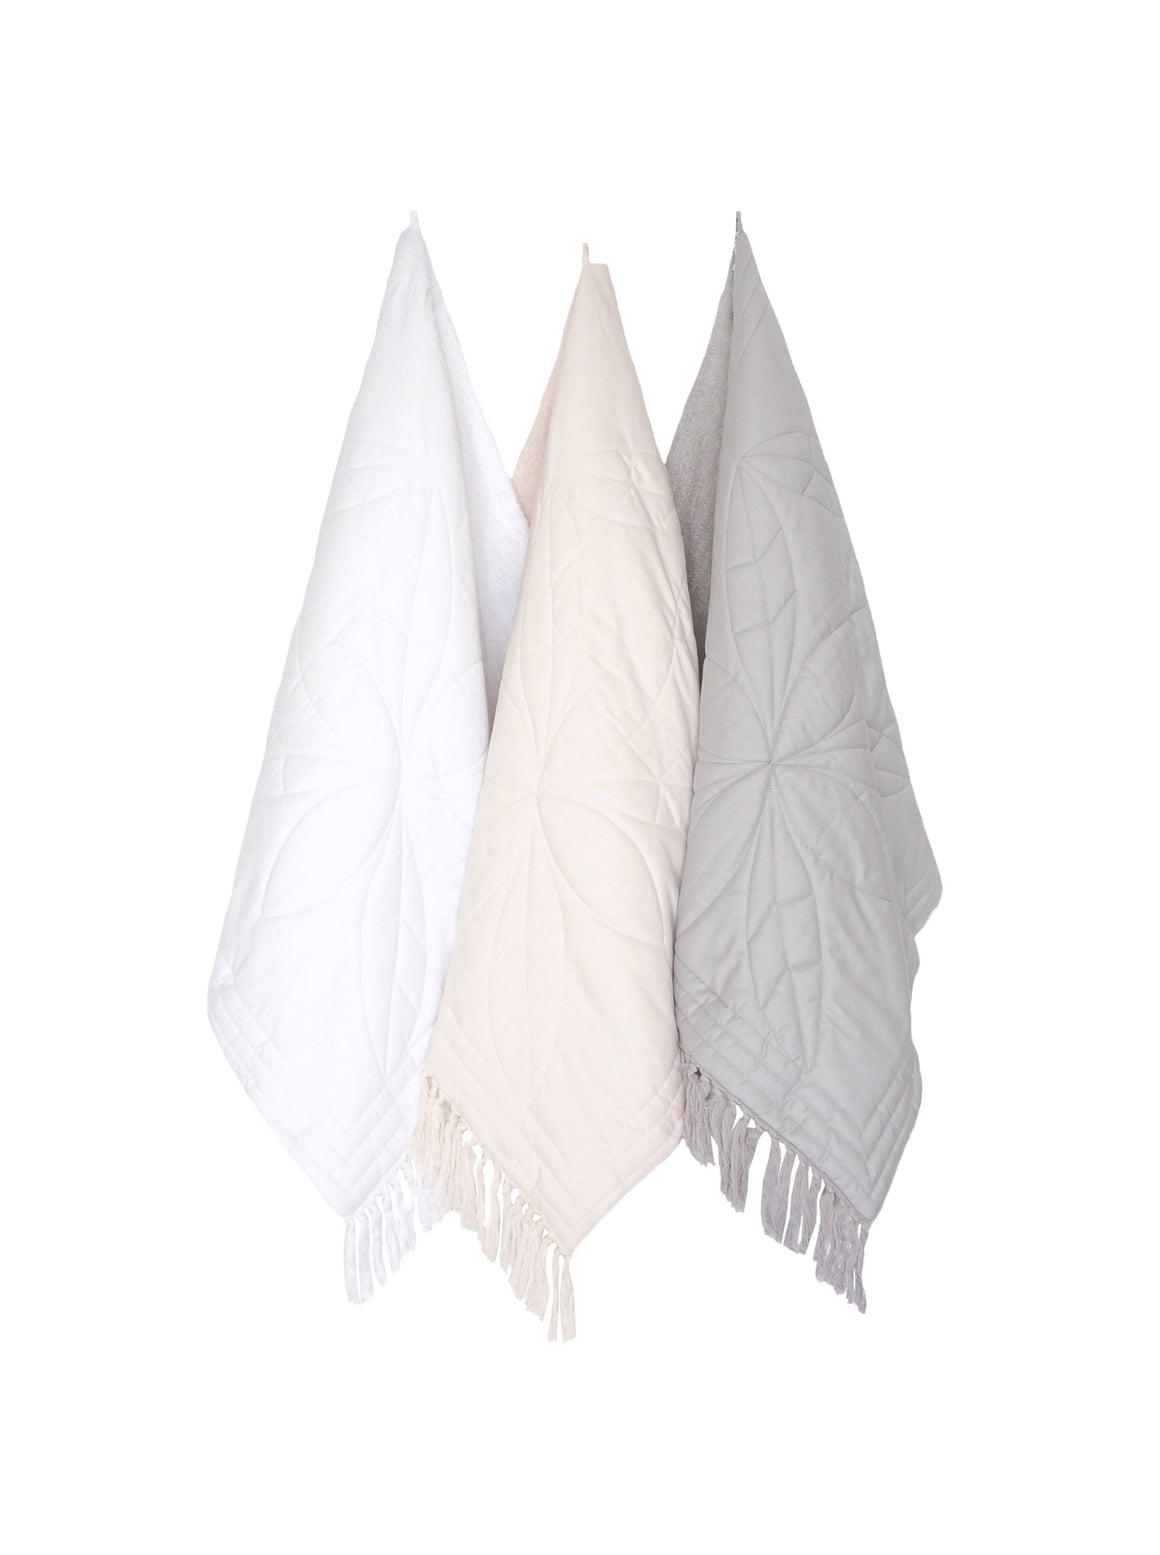 Bonne Mere toddler and baby bath towel white